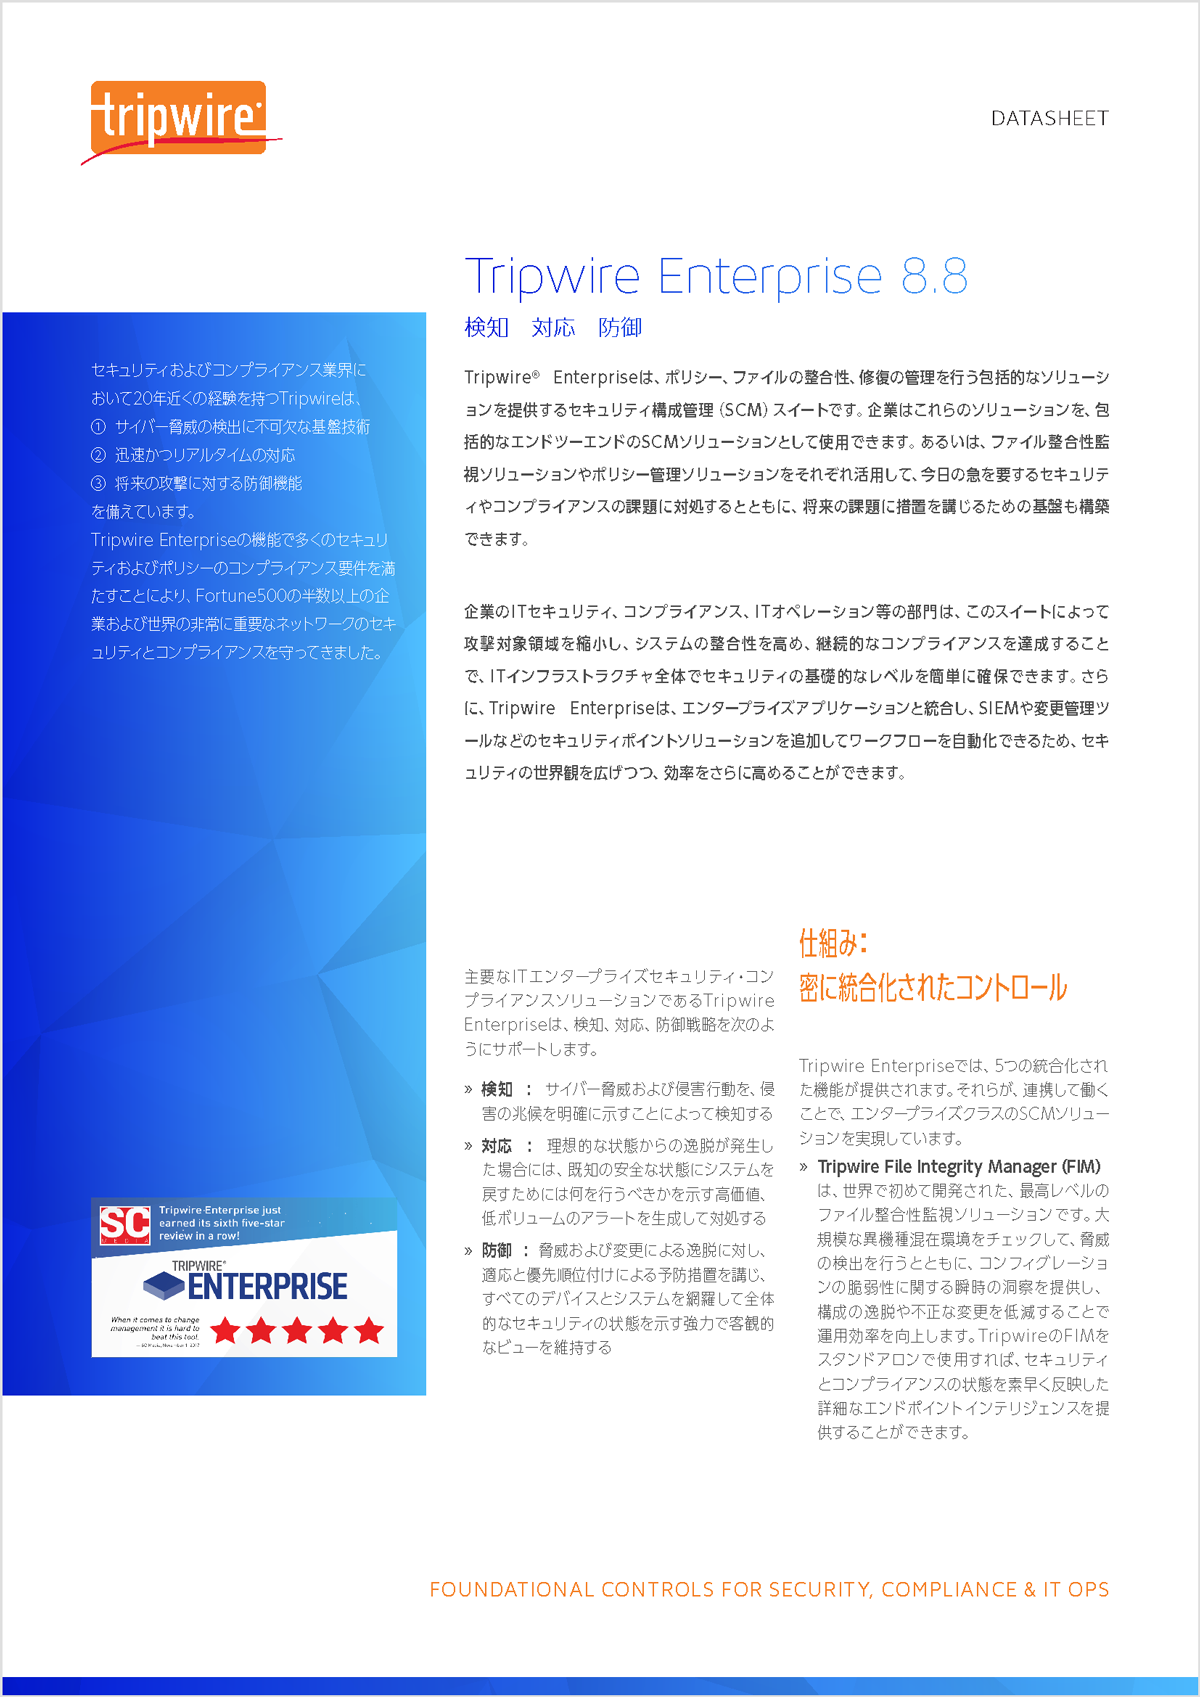 TRIPWIRE ENTERPRISE データシート